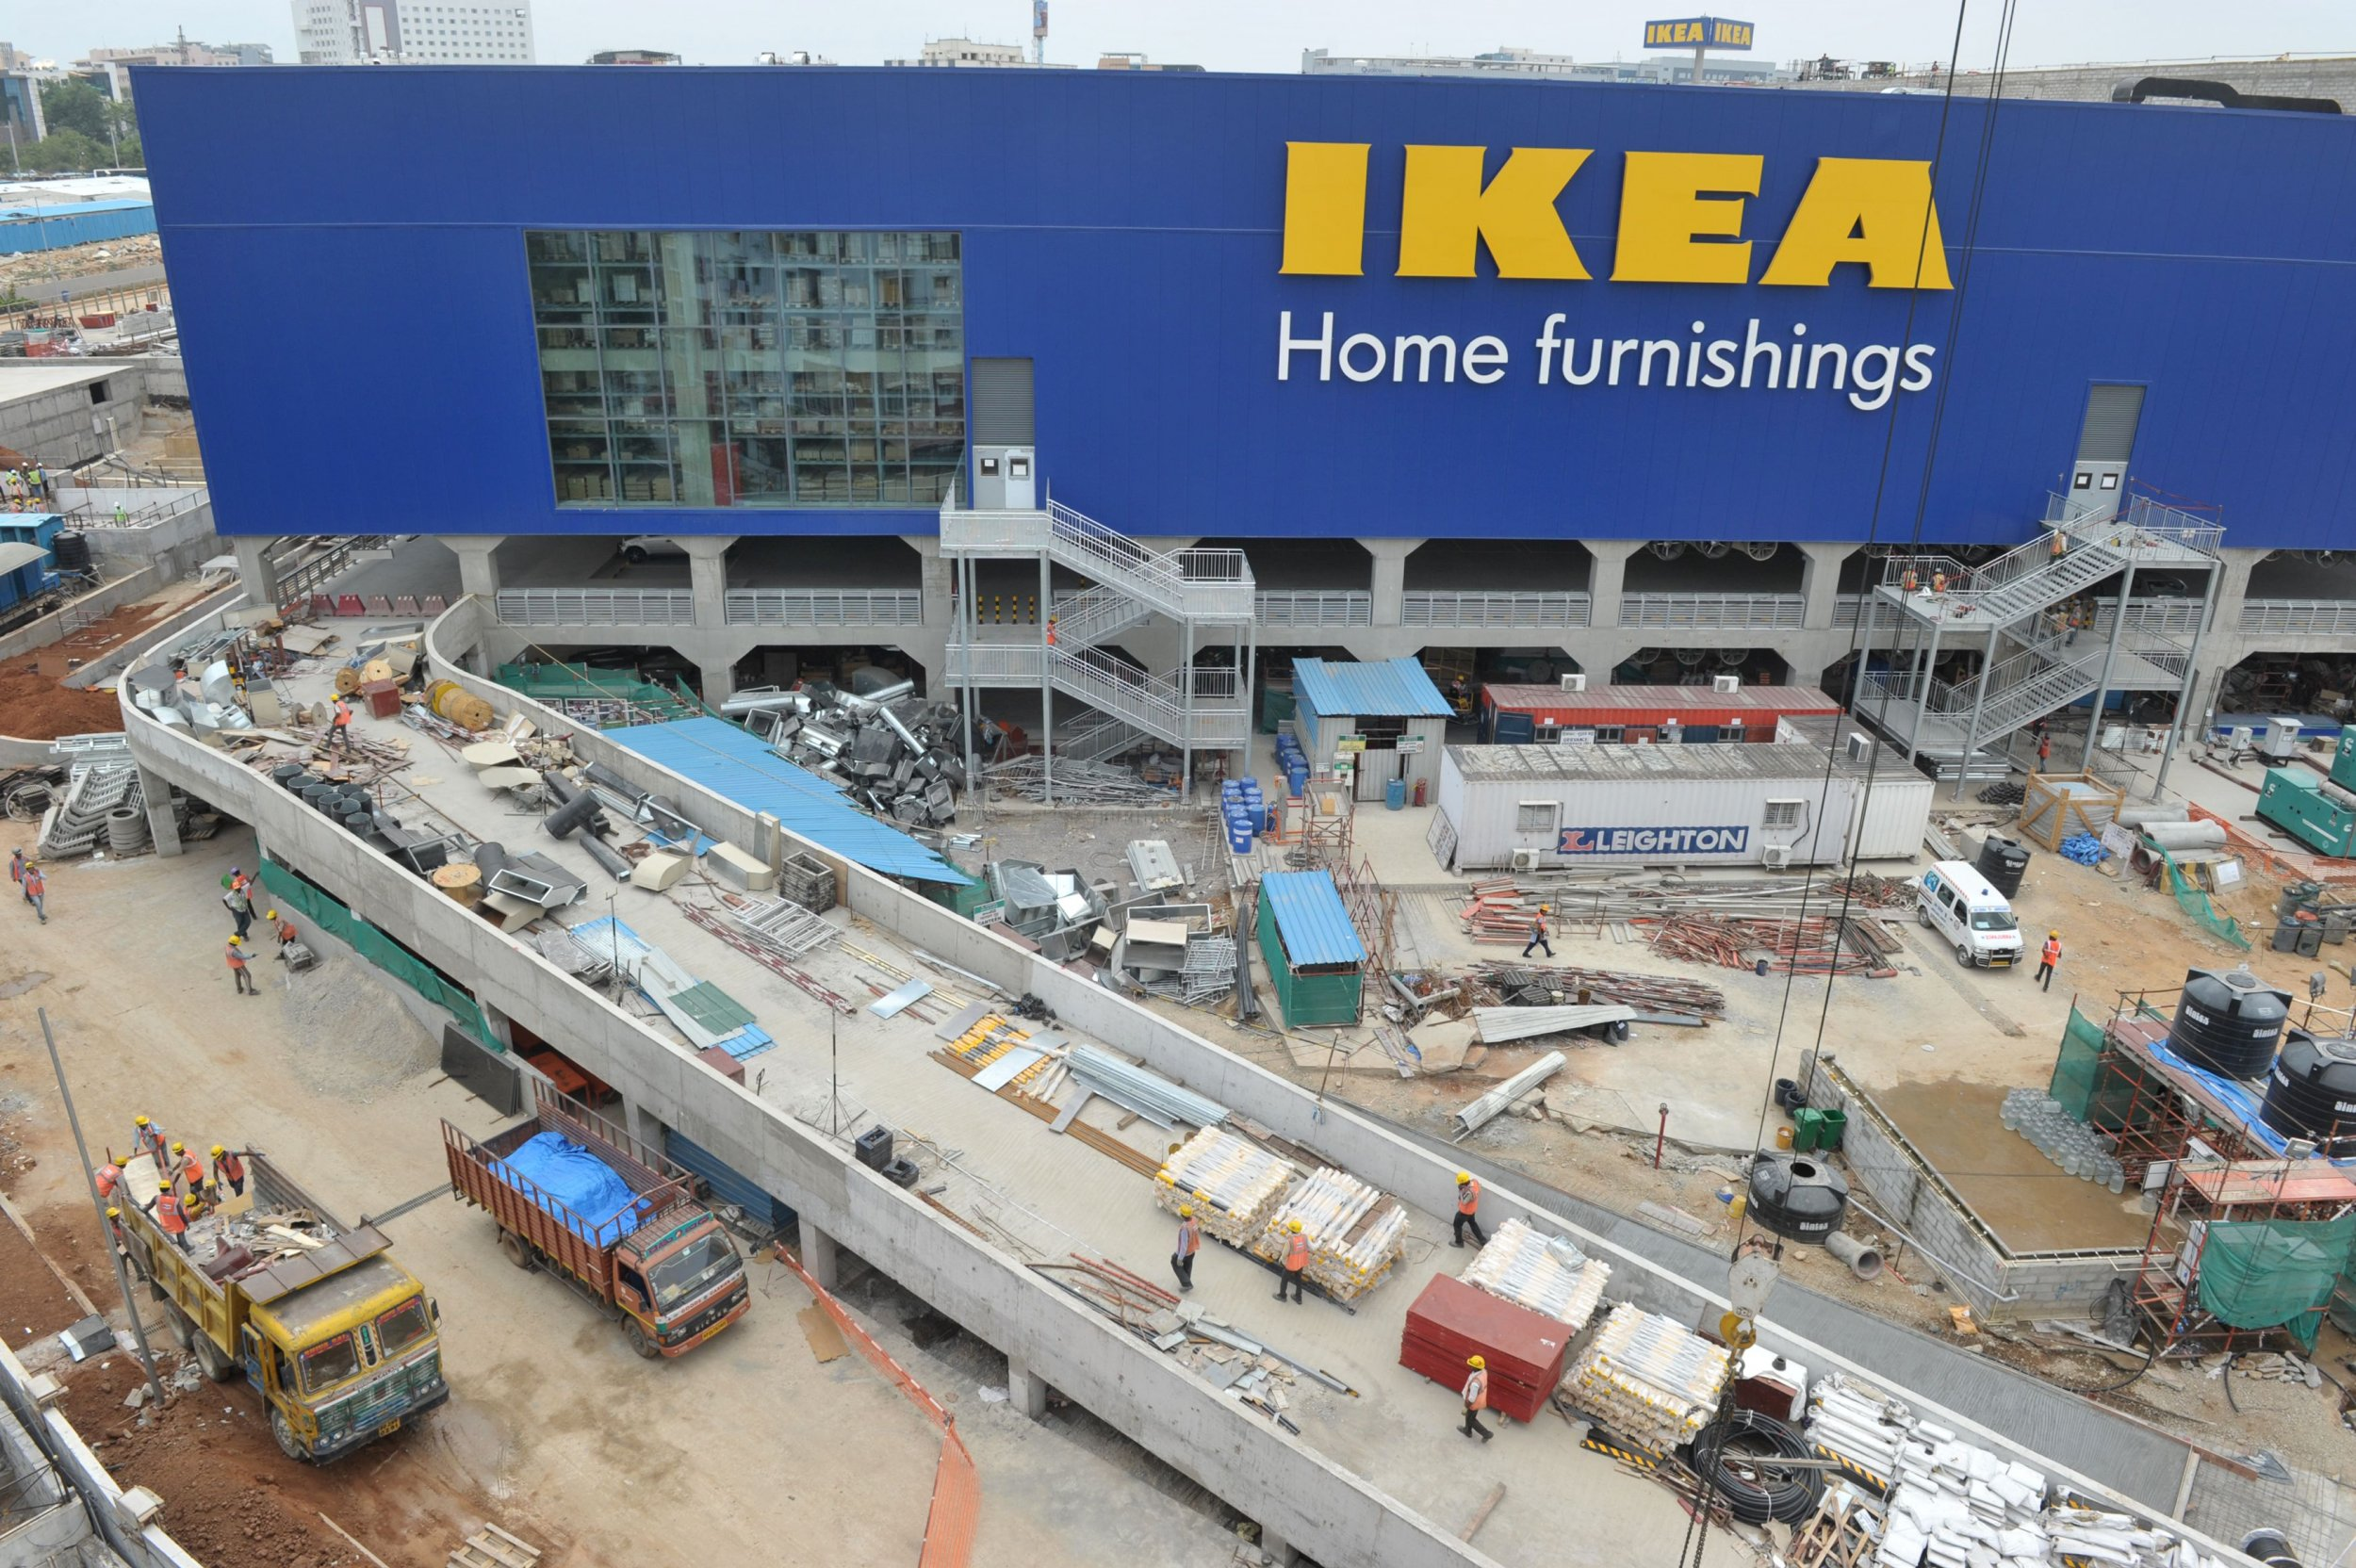 Ikea Apologizes For Leaving New Zealand Off World Map After ... on bed bath and beyond map, alshaya map, jordan's map, eden project map, jack in the box map, stores pacific location on map, national grid map, los angeles location map, 7-eleven locations map, micro center map, pier 1 map, henry's map, mcdonald's map, petsmart map, anthropologie map, pottery barn map, world map, white castle map, old navy map, in n out map,